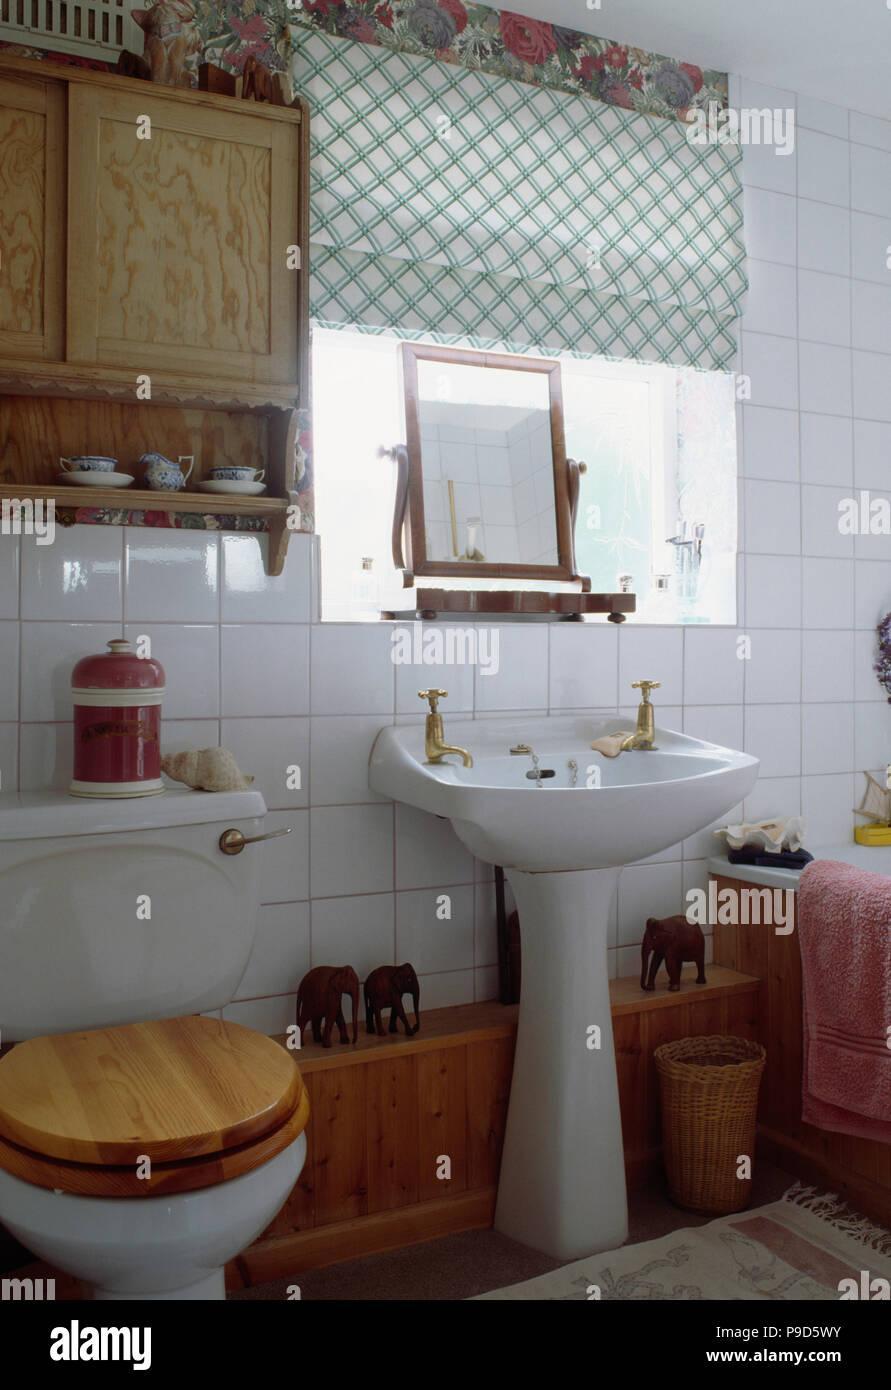 Wooden Cabinet Above Toilet With Wooden Seat In Small Bathroom With Green Checked Blind Above Pedestal Basin Stock Photo Alamy